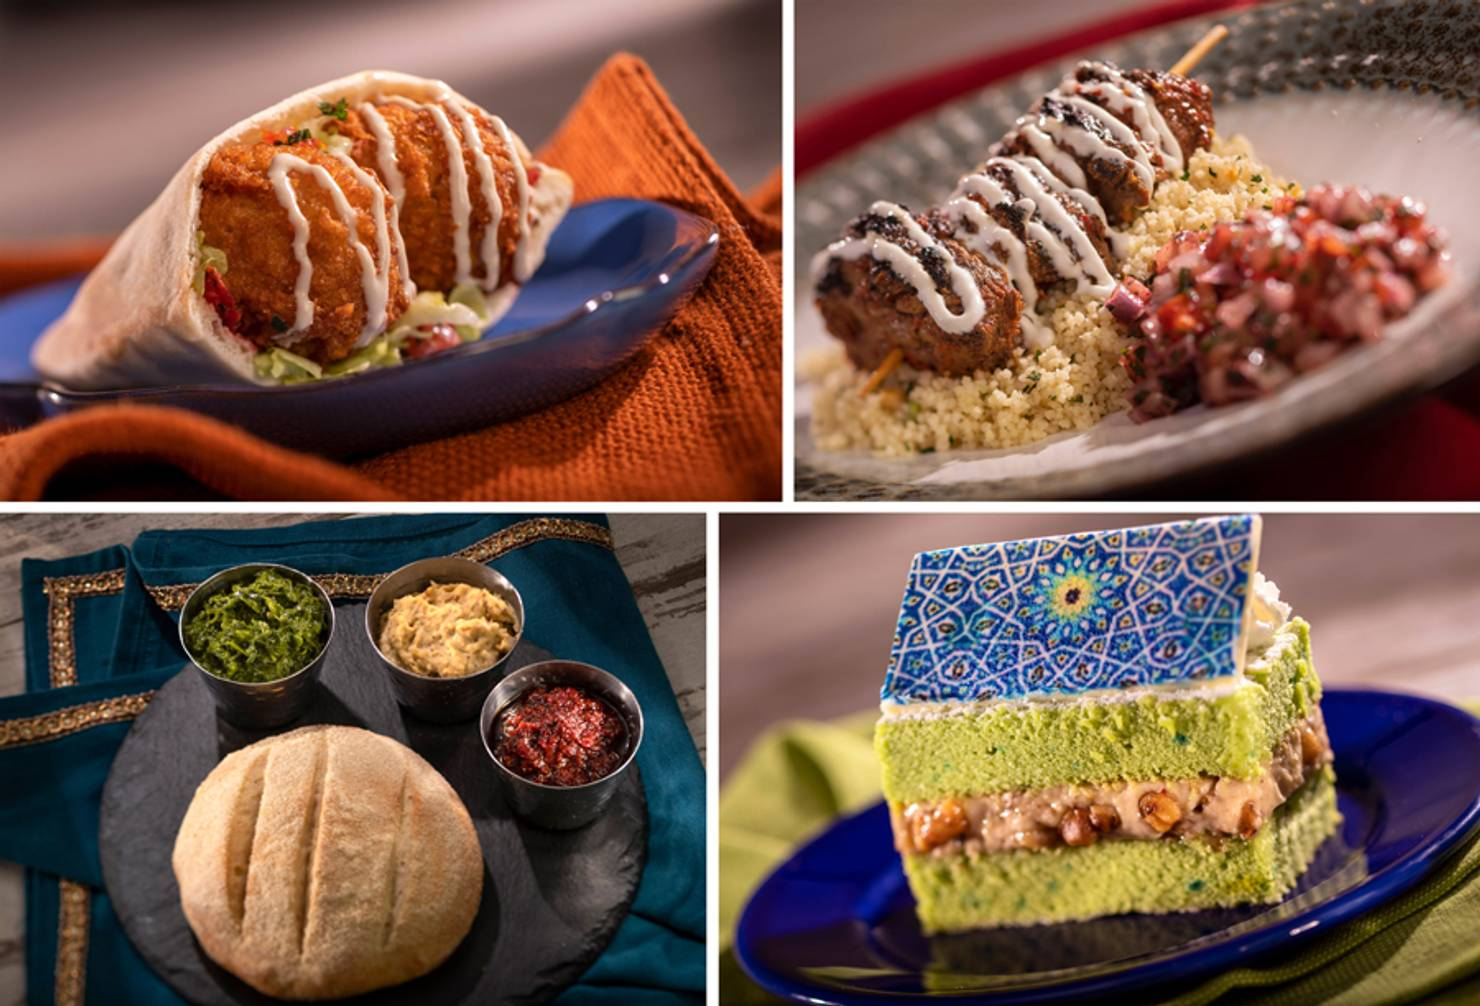 Tangierine Café - Fried Falafel Pita, Grilled Kebabs, Stone-baked Moroccan Bread with Hummus and Pistachio Cake